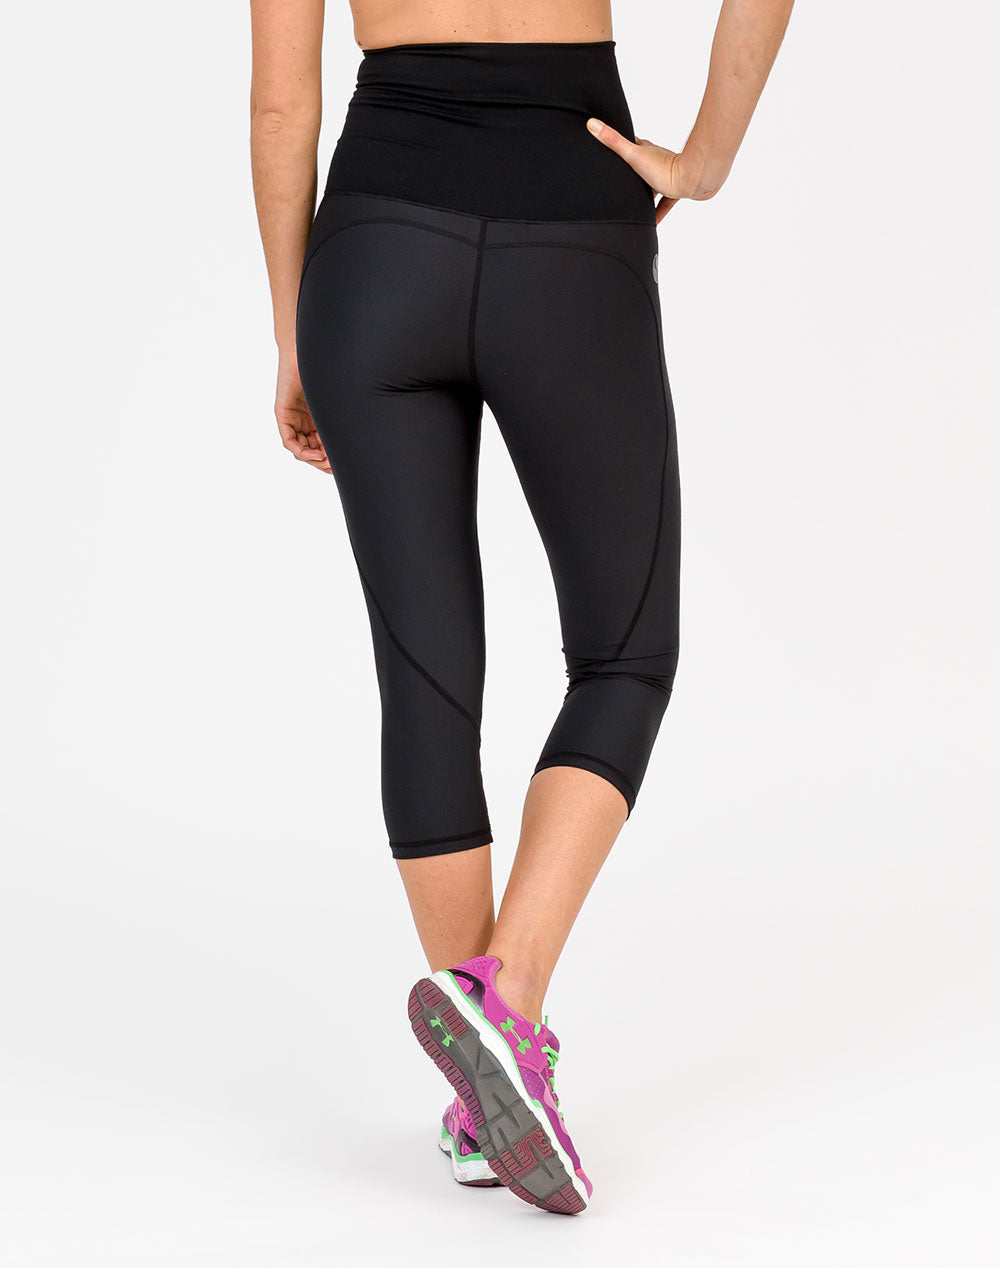 back view of a mom wearing black 3/4 maternity leggings and running shoes